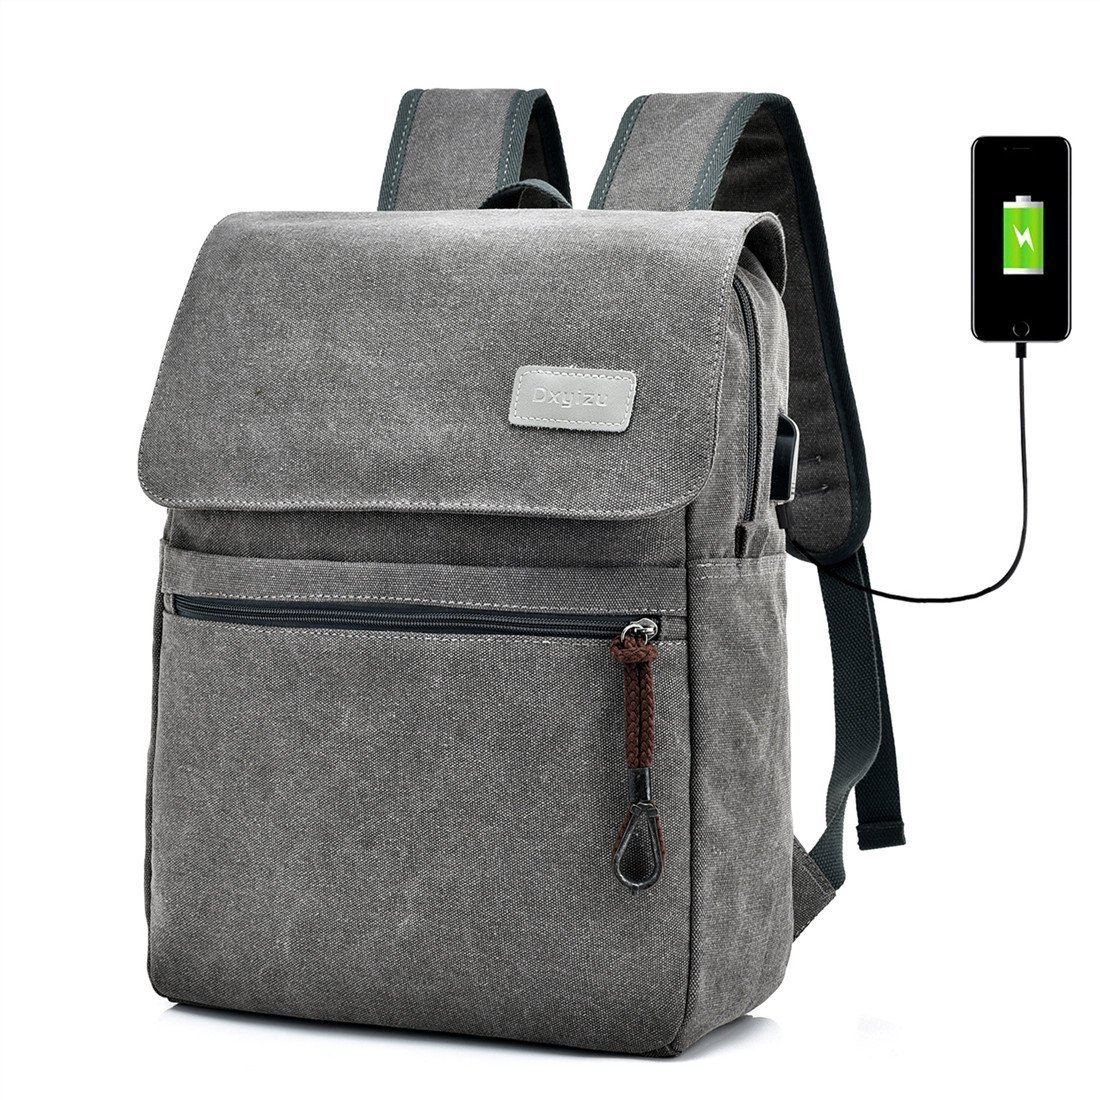 Gohyo Canvas Laptop Backpack with USB Charging Port and Compartment for Men Women, Vintage Computer Bag for Travel College School (Gray)